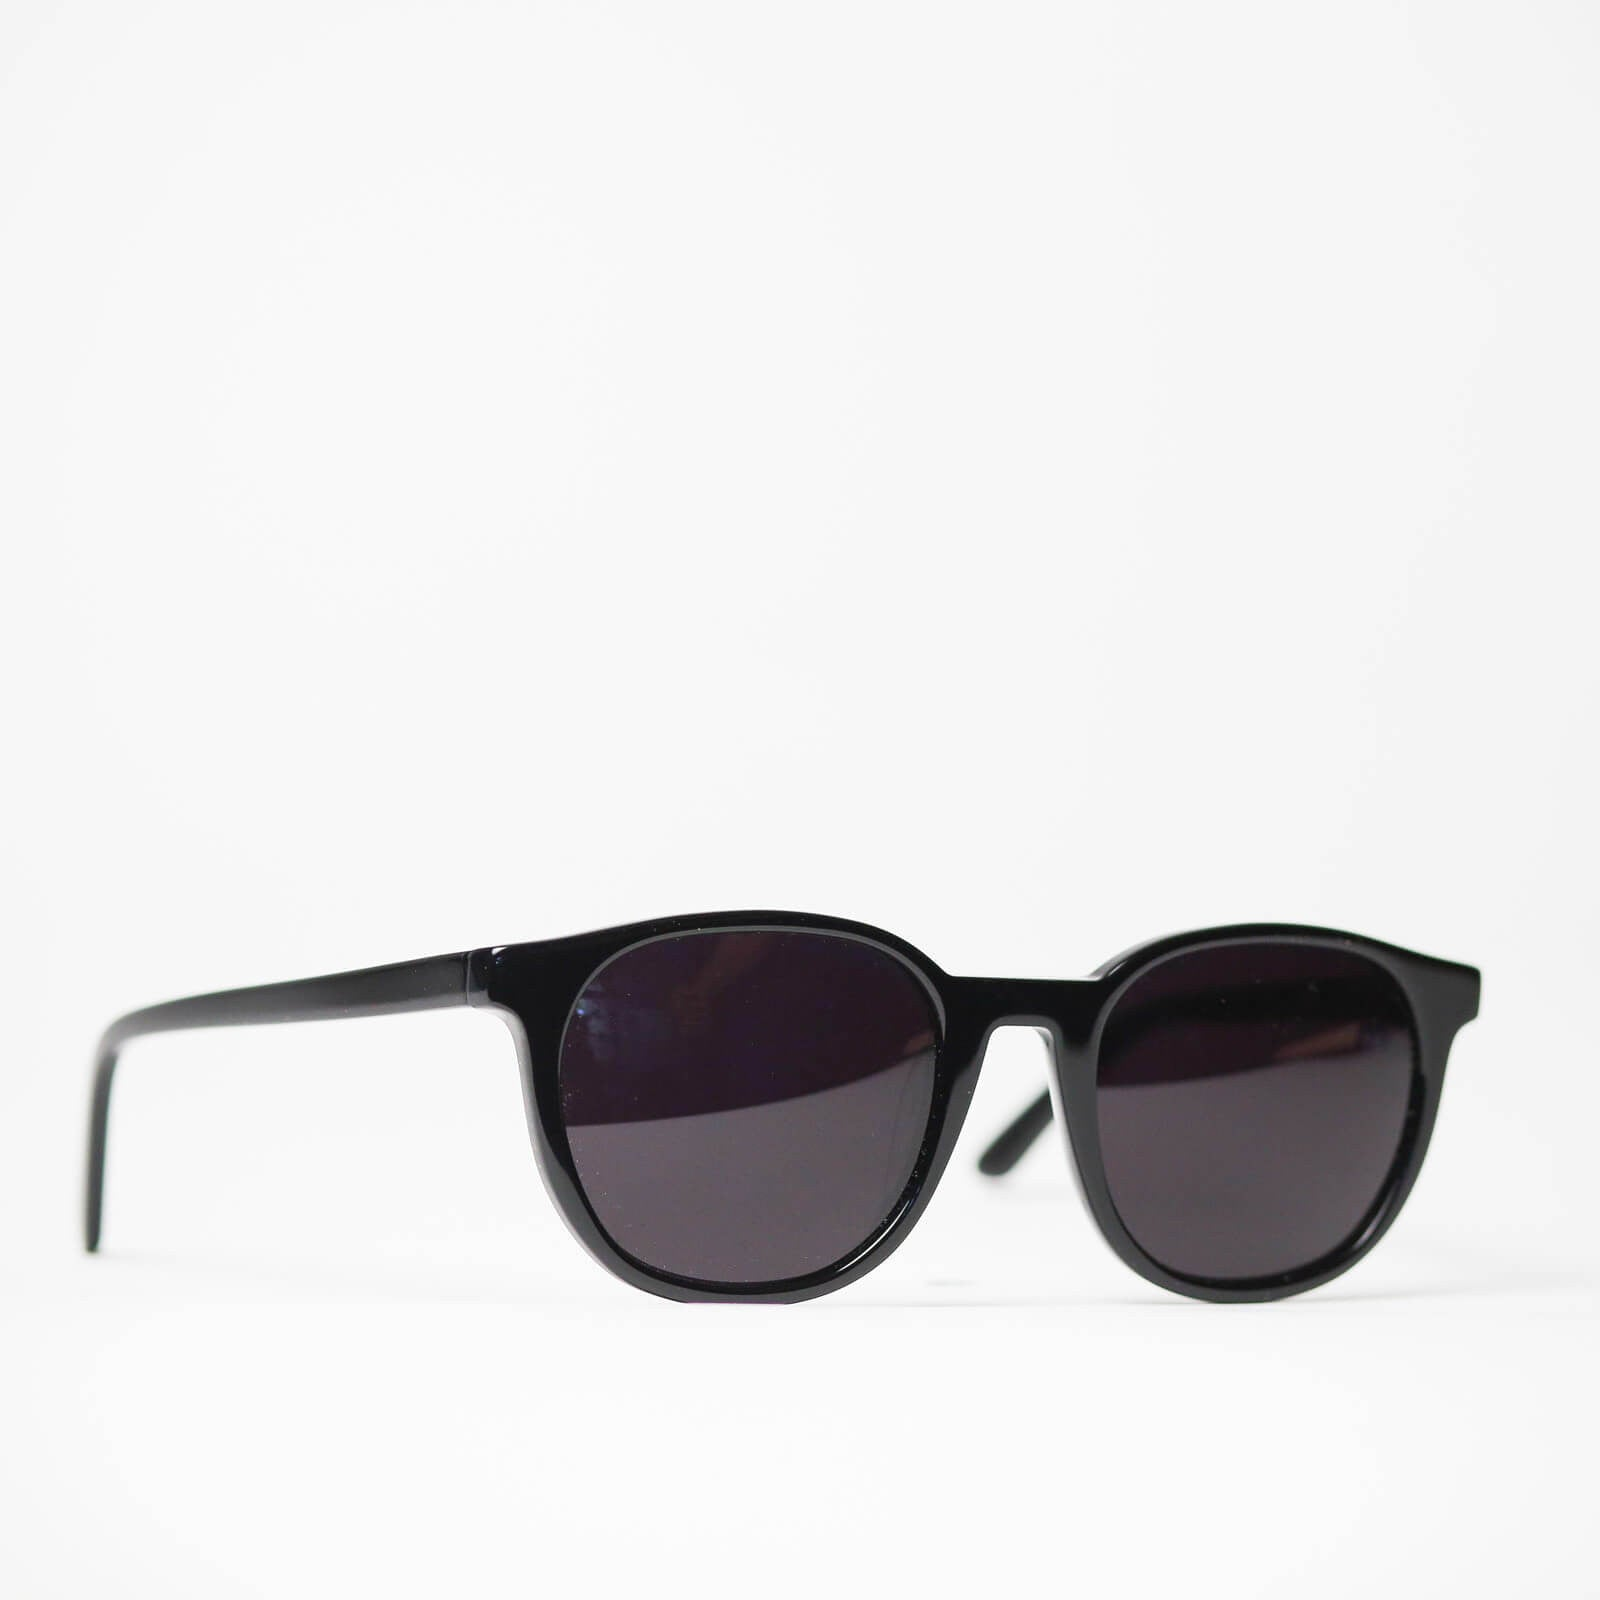 1072 Sunglasses - Black